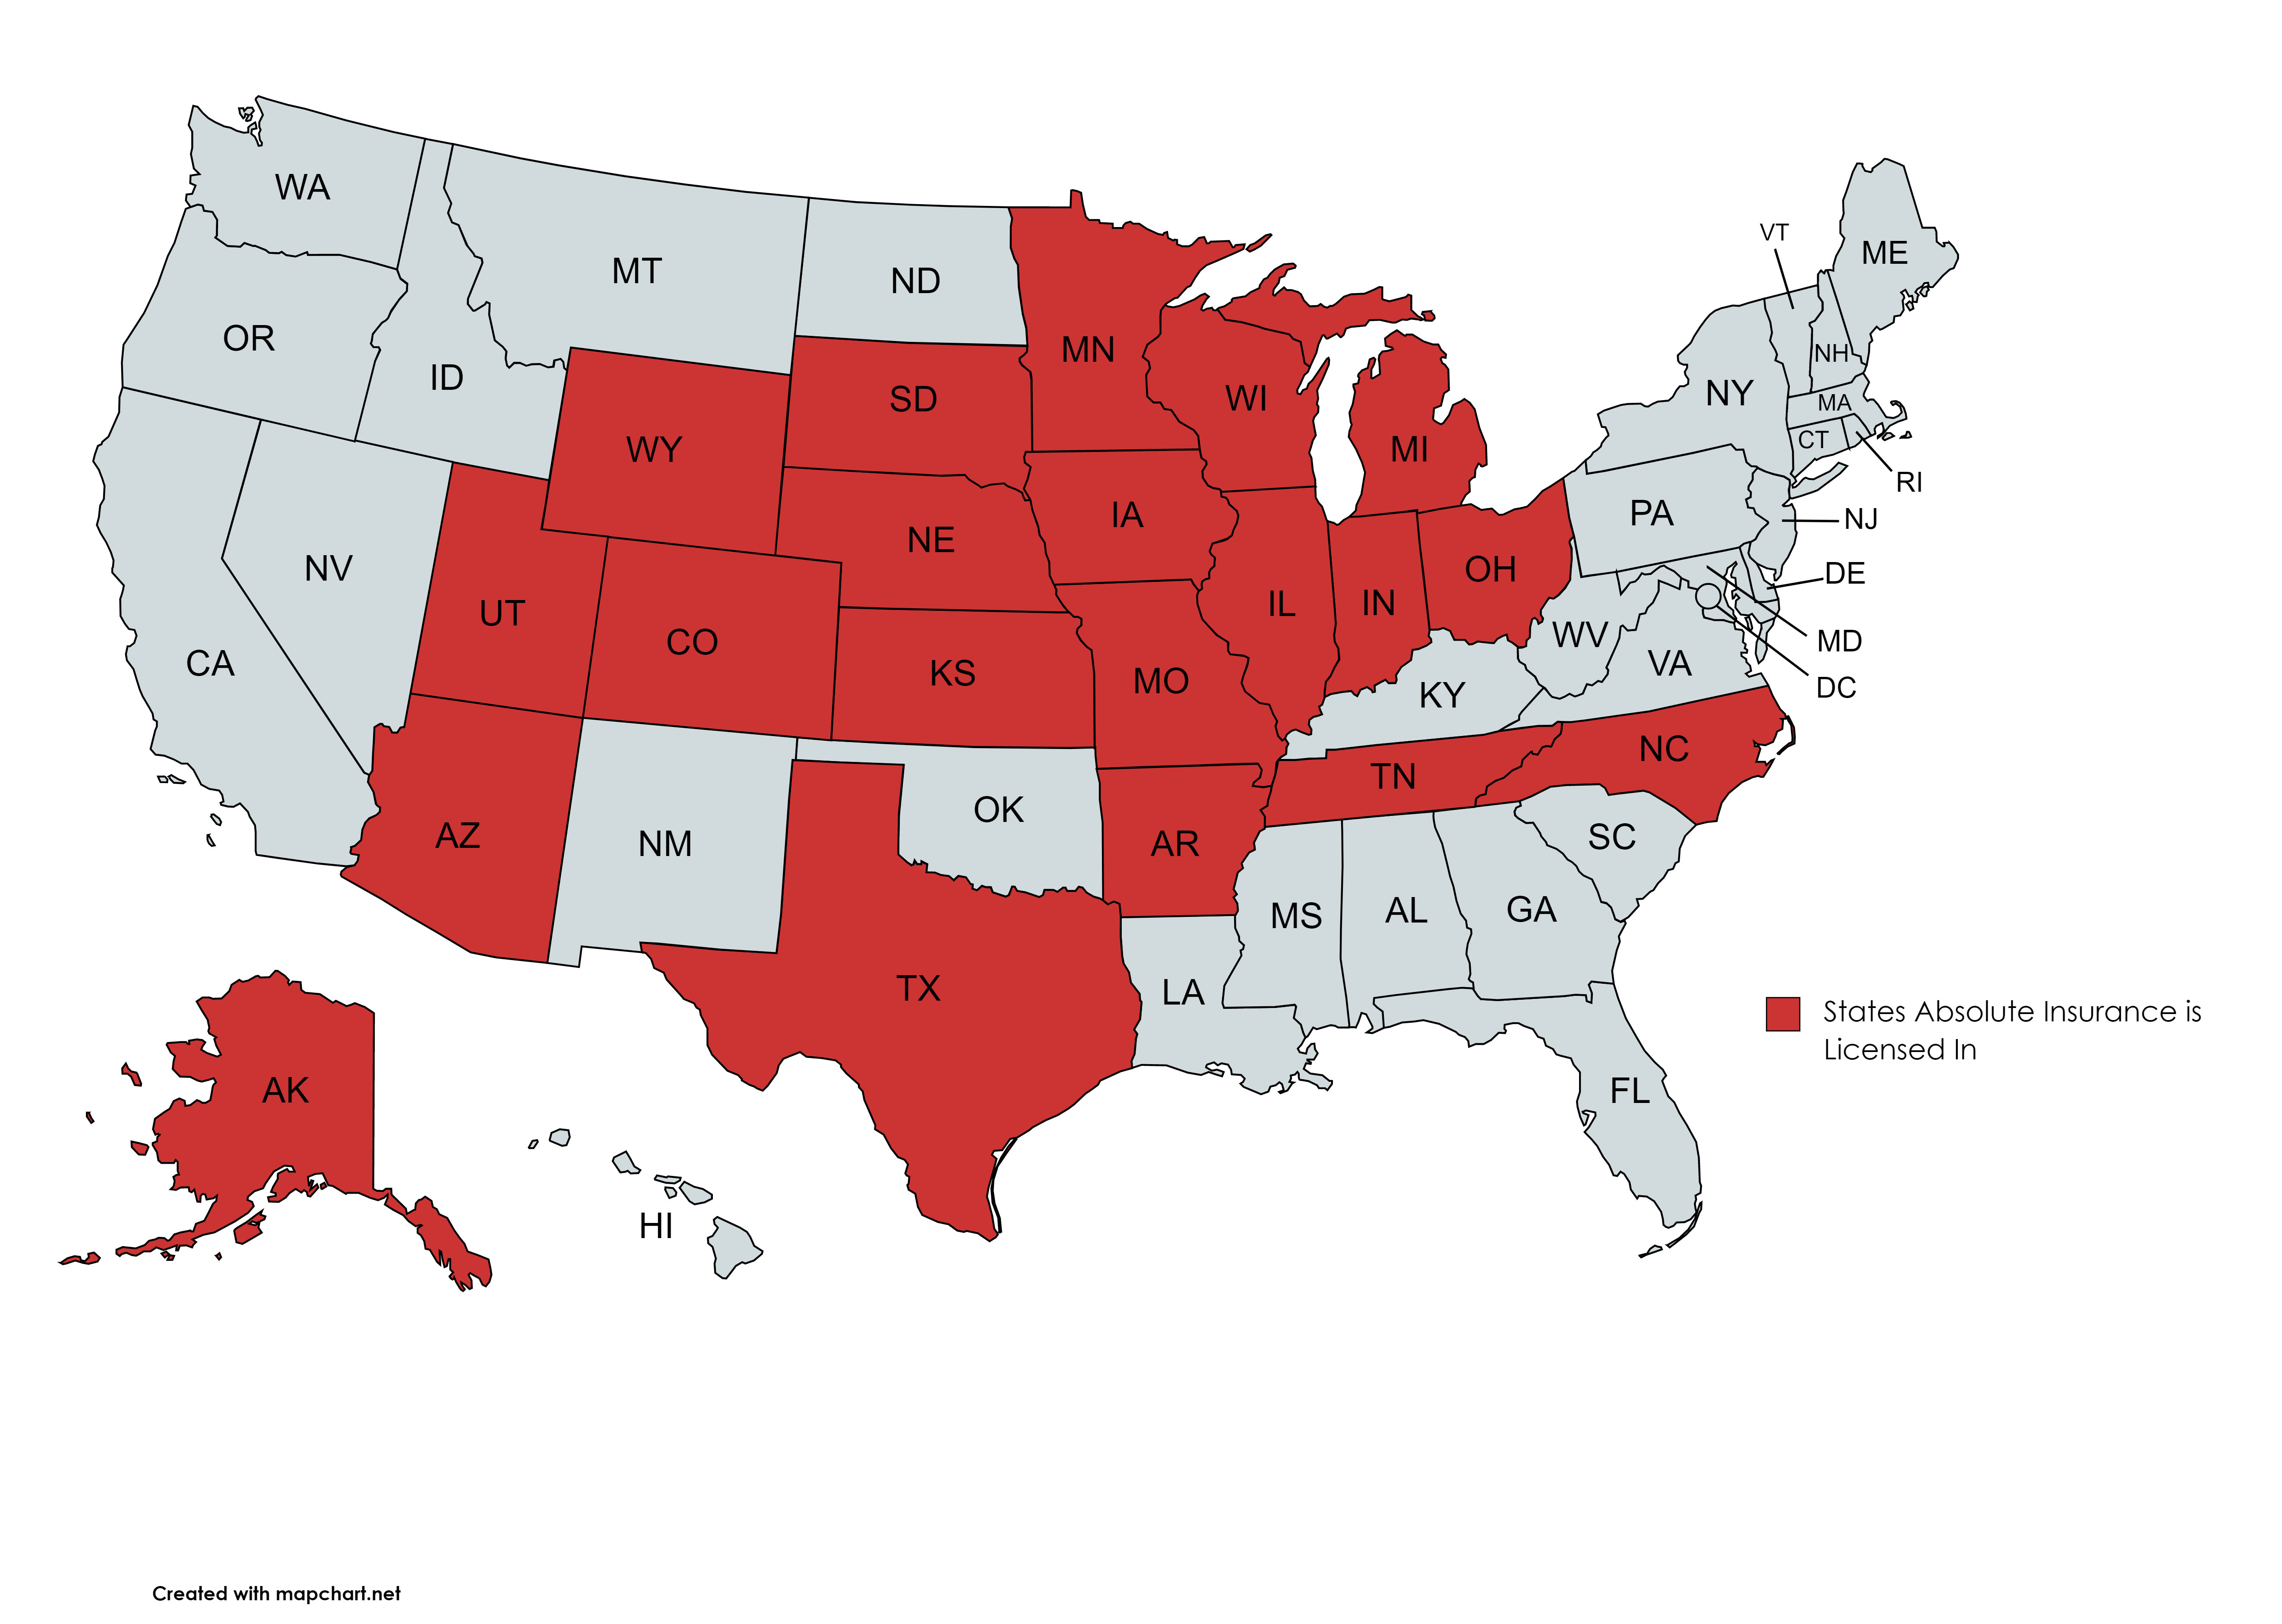 Map showing 18 states Absolute Insurance is licensed in